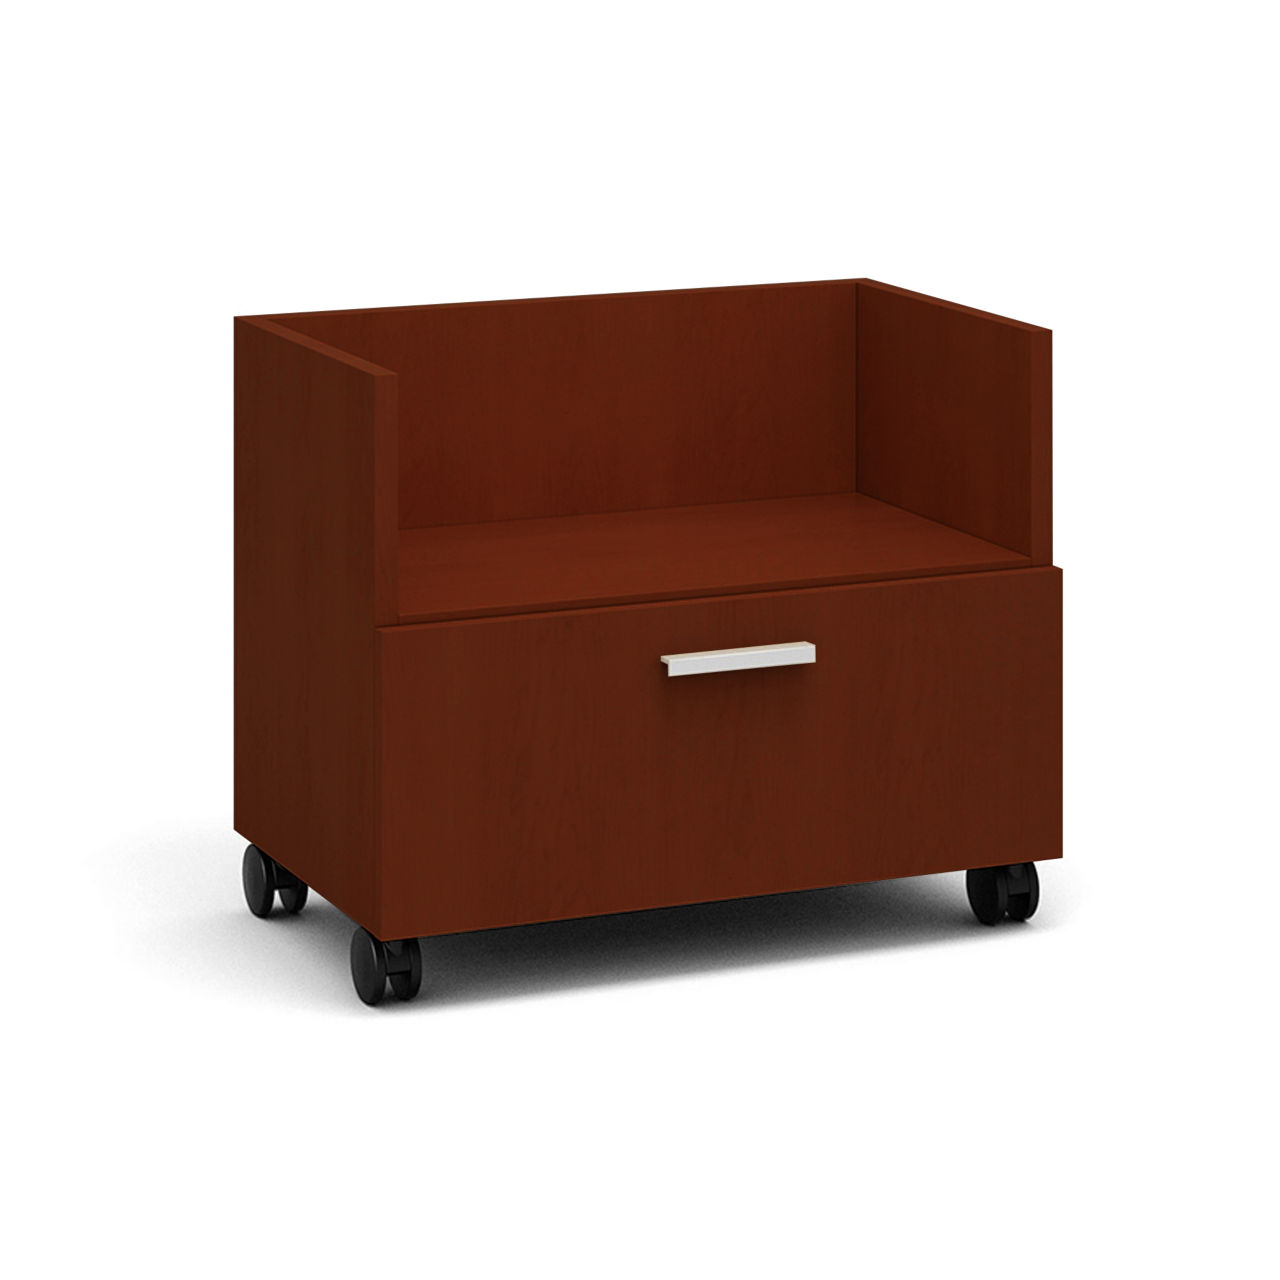 Currency Mobile Cart with Lateral Drawer in Marbled Cherry by Steelcase